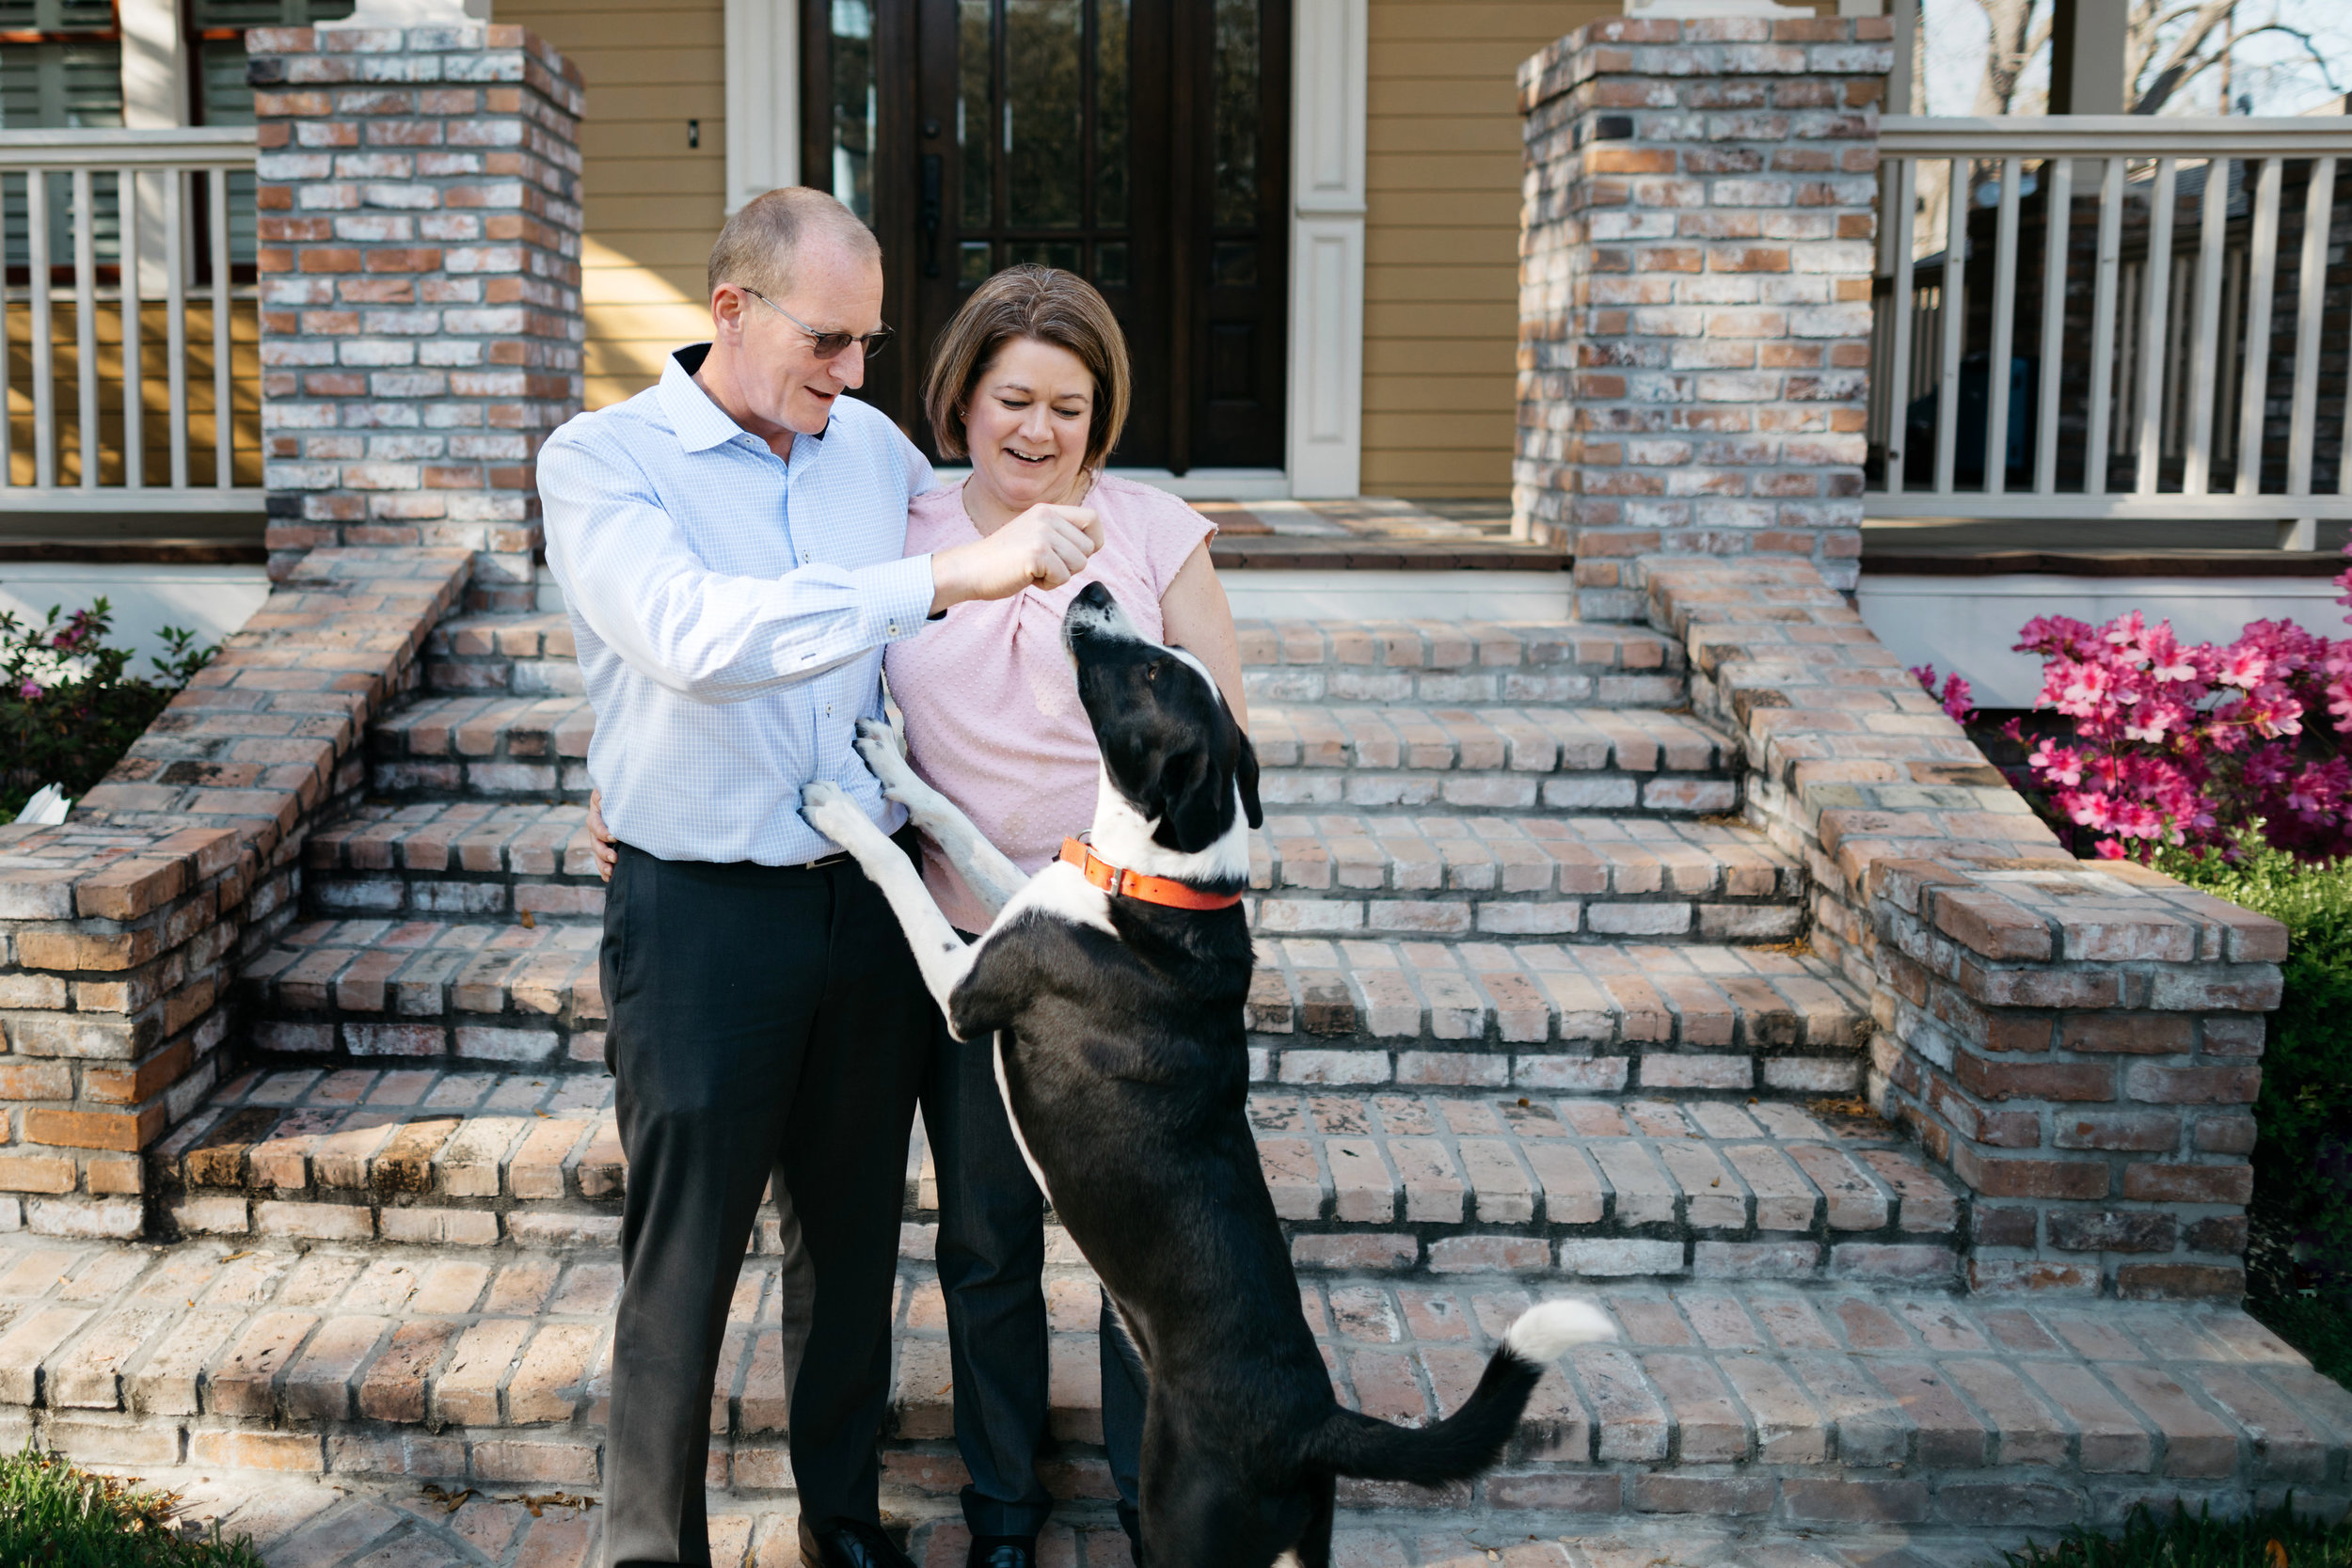 PURE members Buffy Tate and Jonathan Hunt along with their dog, Pepper, at their home in Houston, Texas.